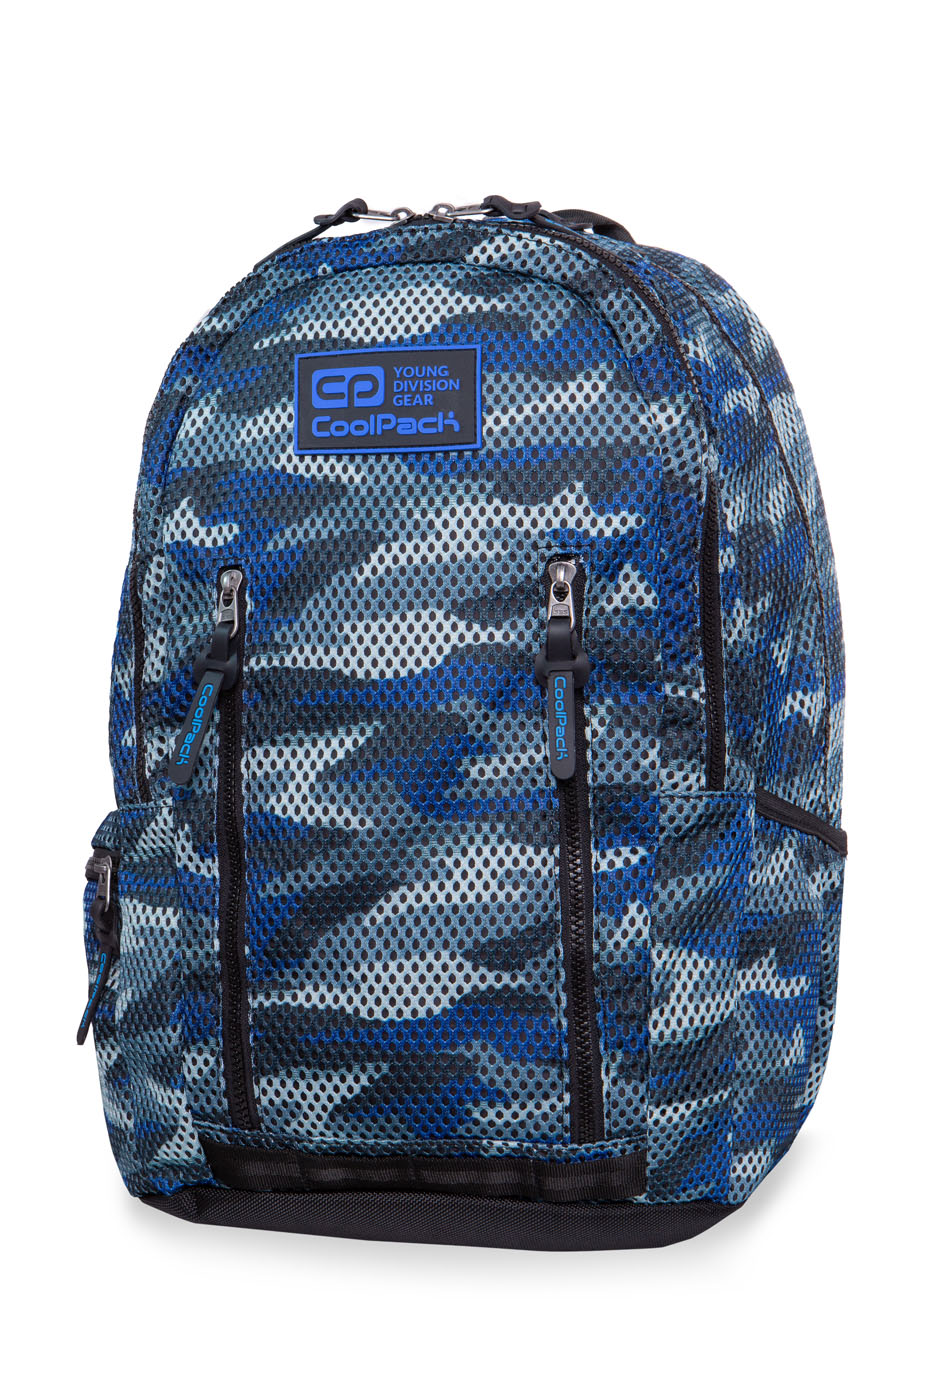 Coolpack - impact ii - youth backpack - camo mesh gray